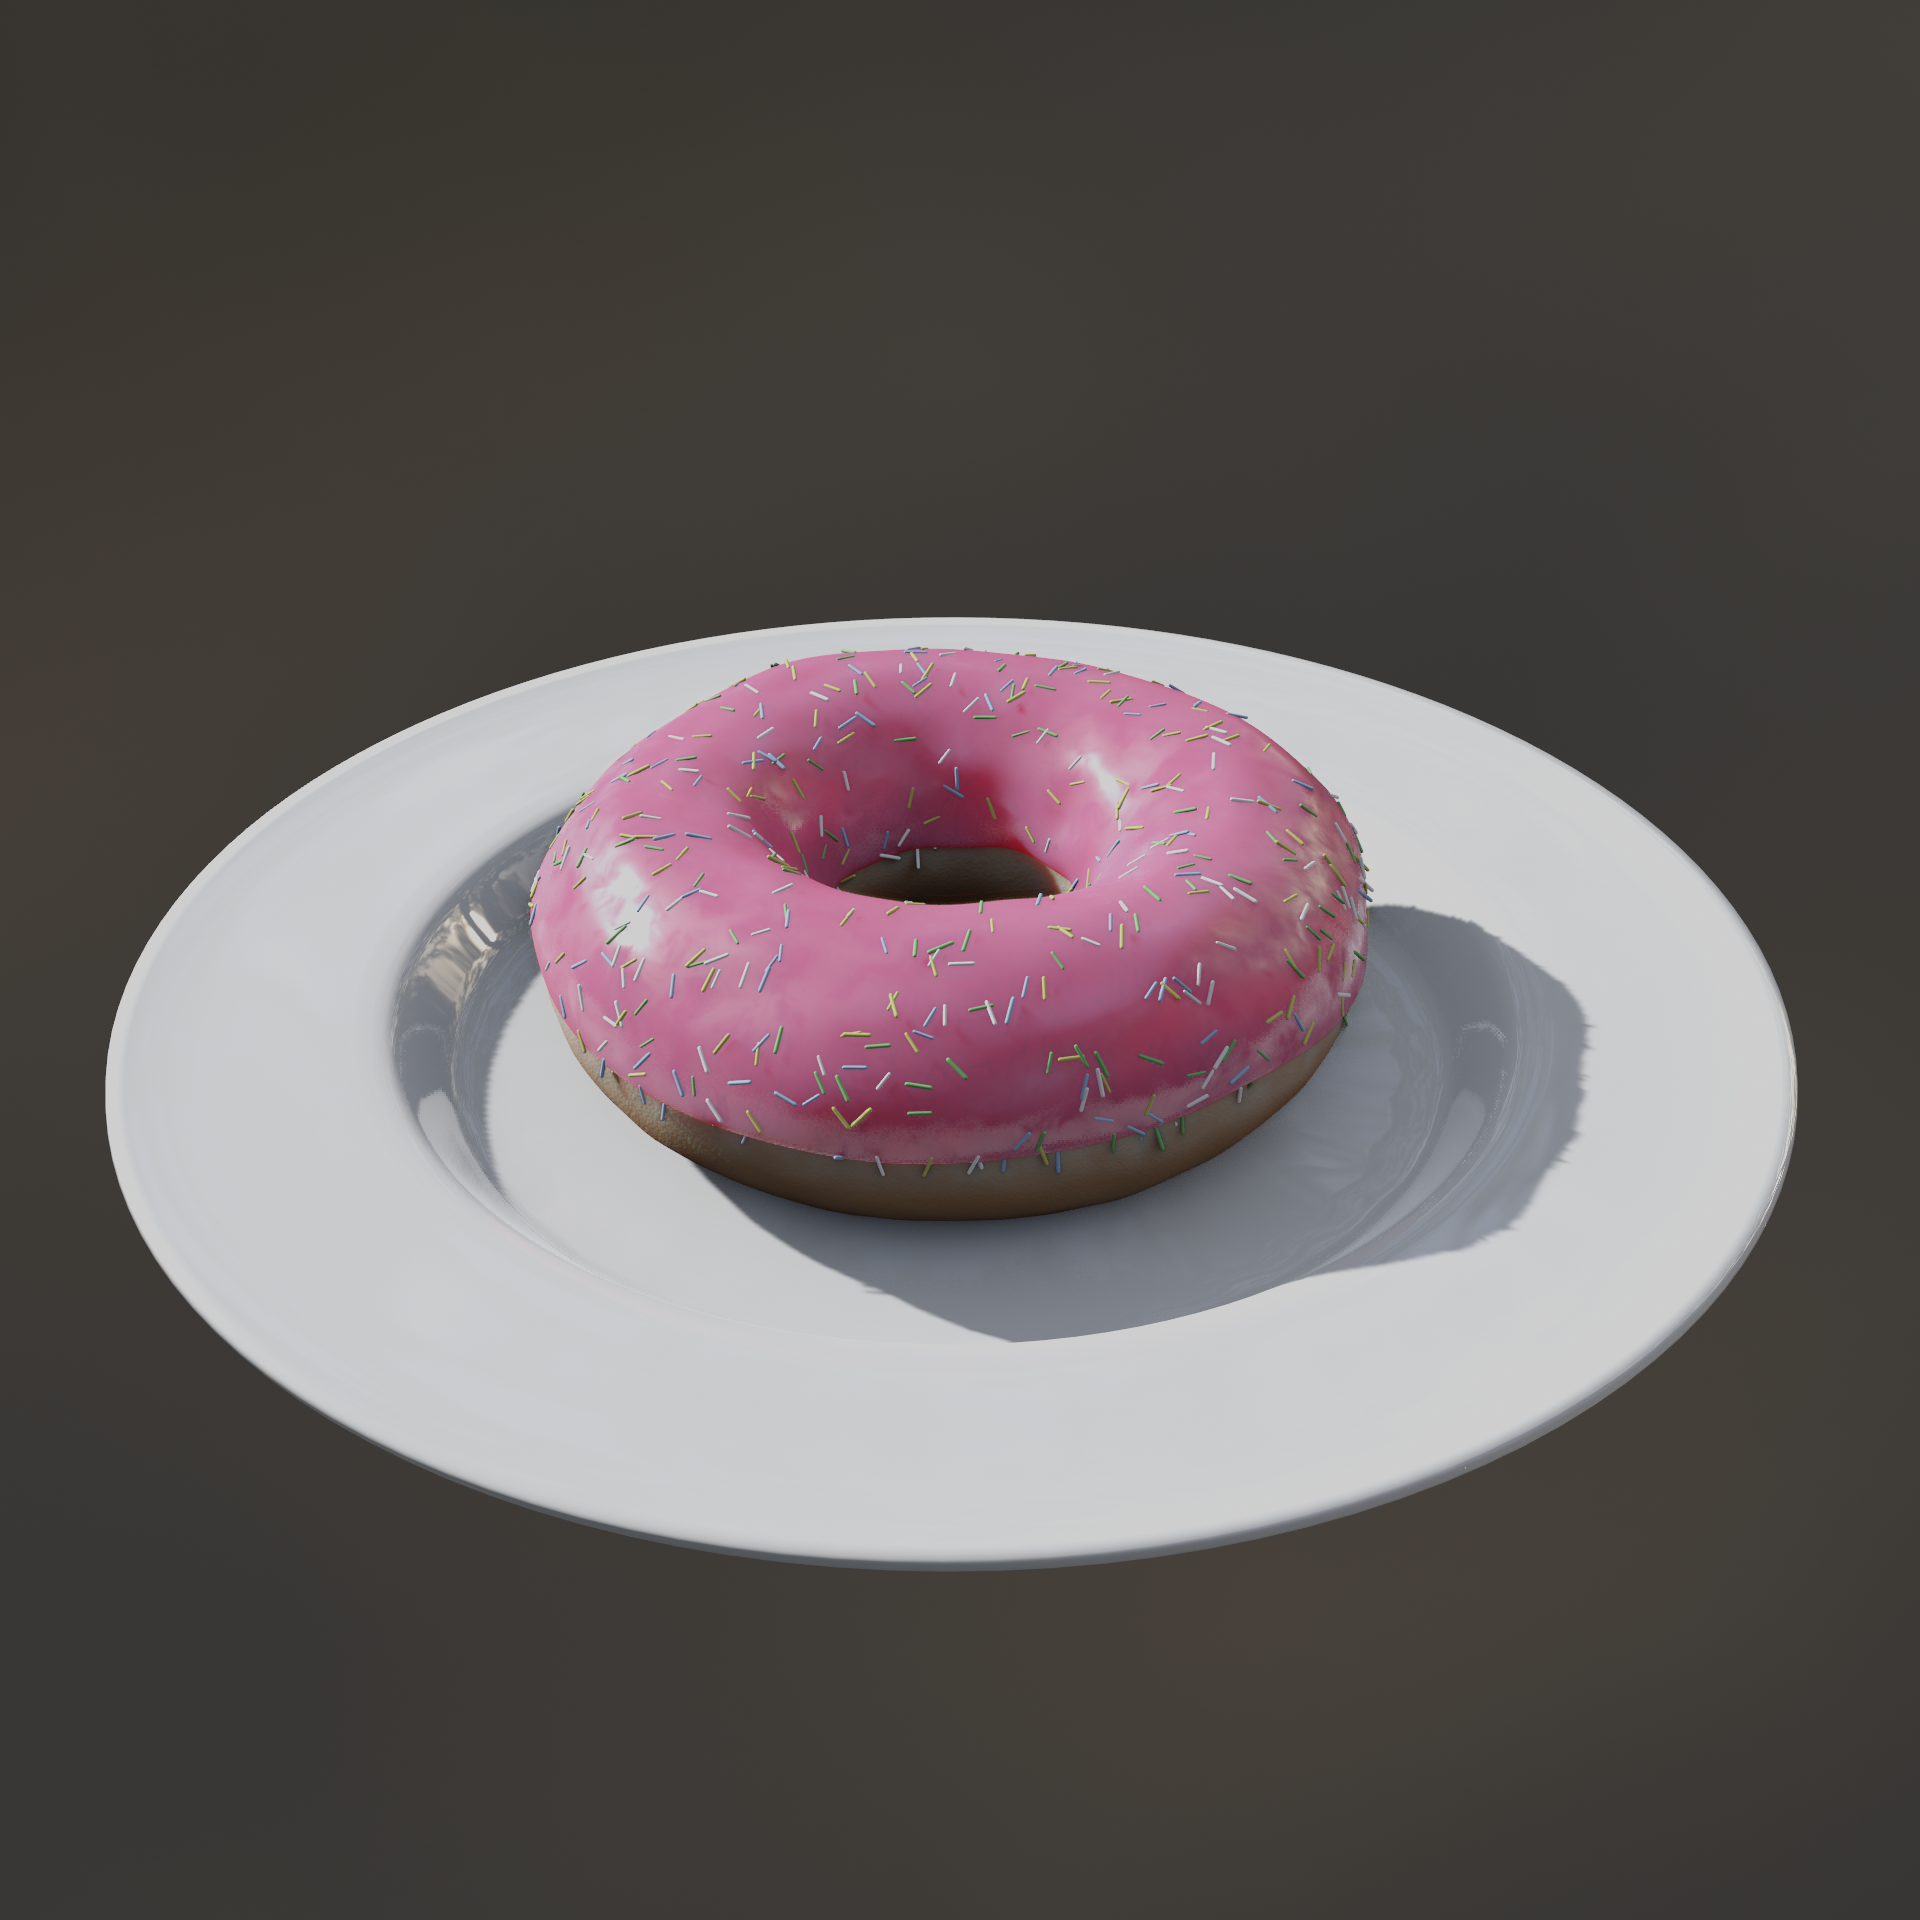 nondestructive donut preview image 6